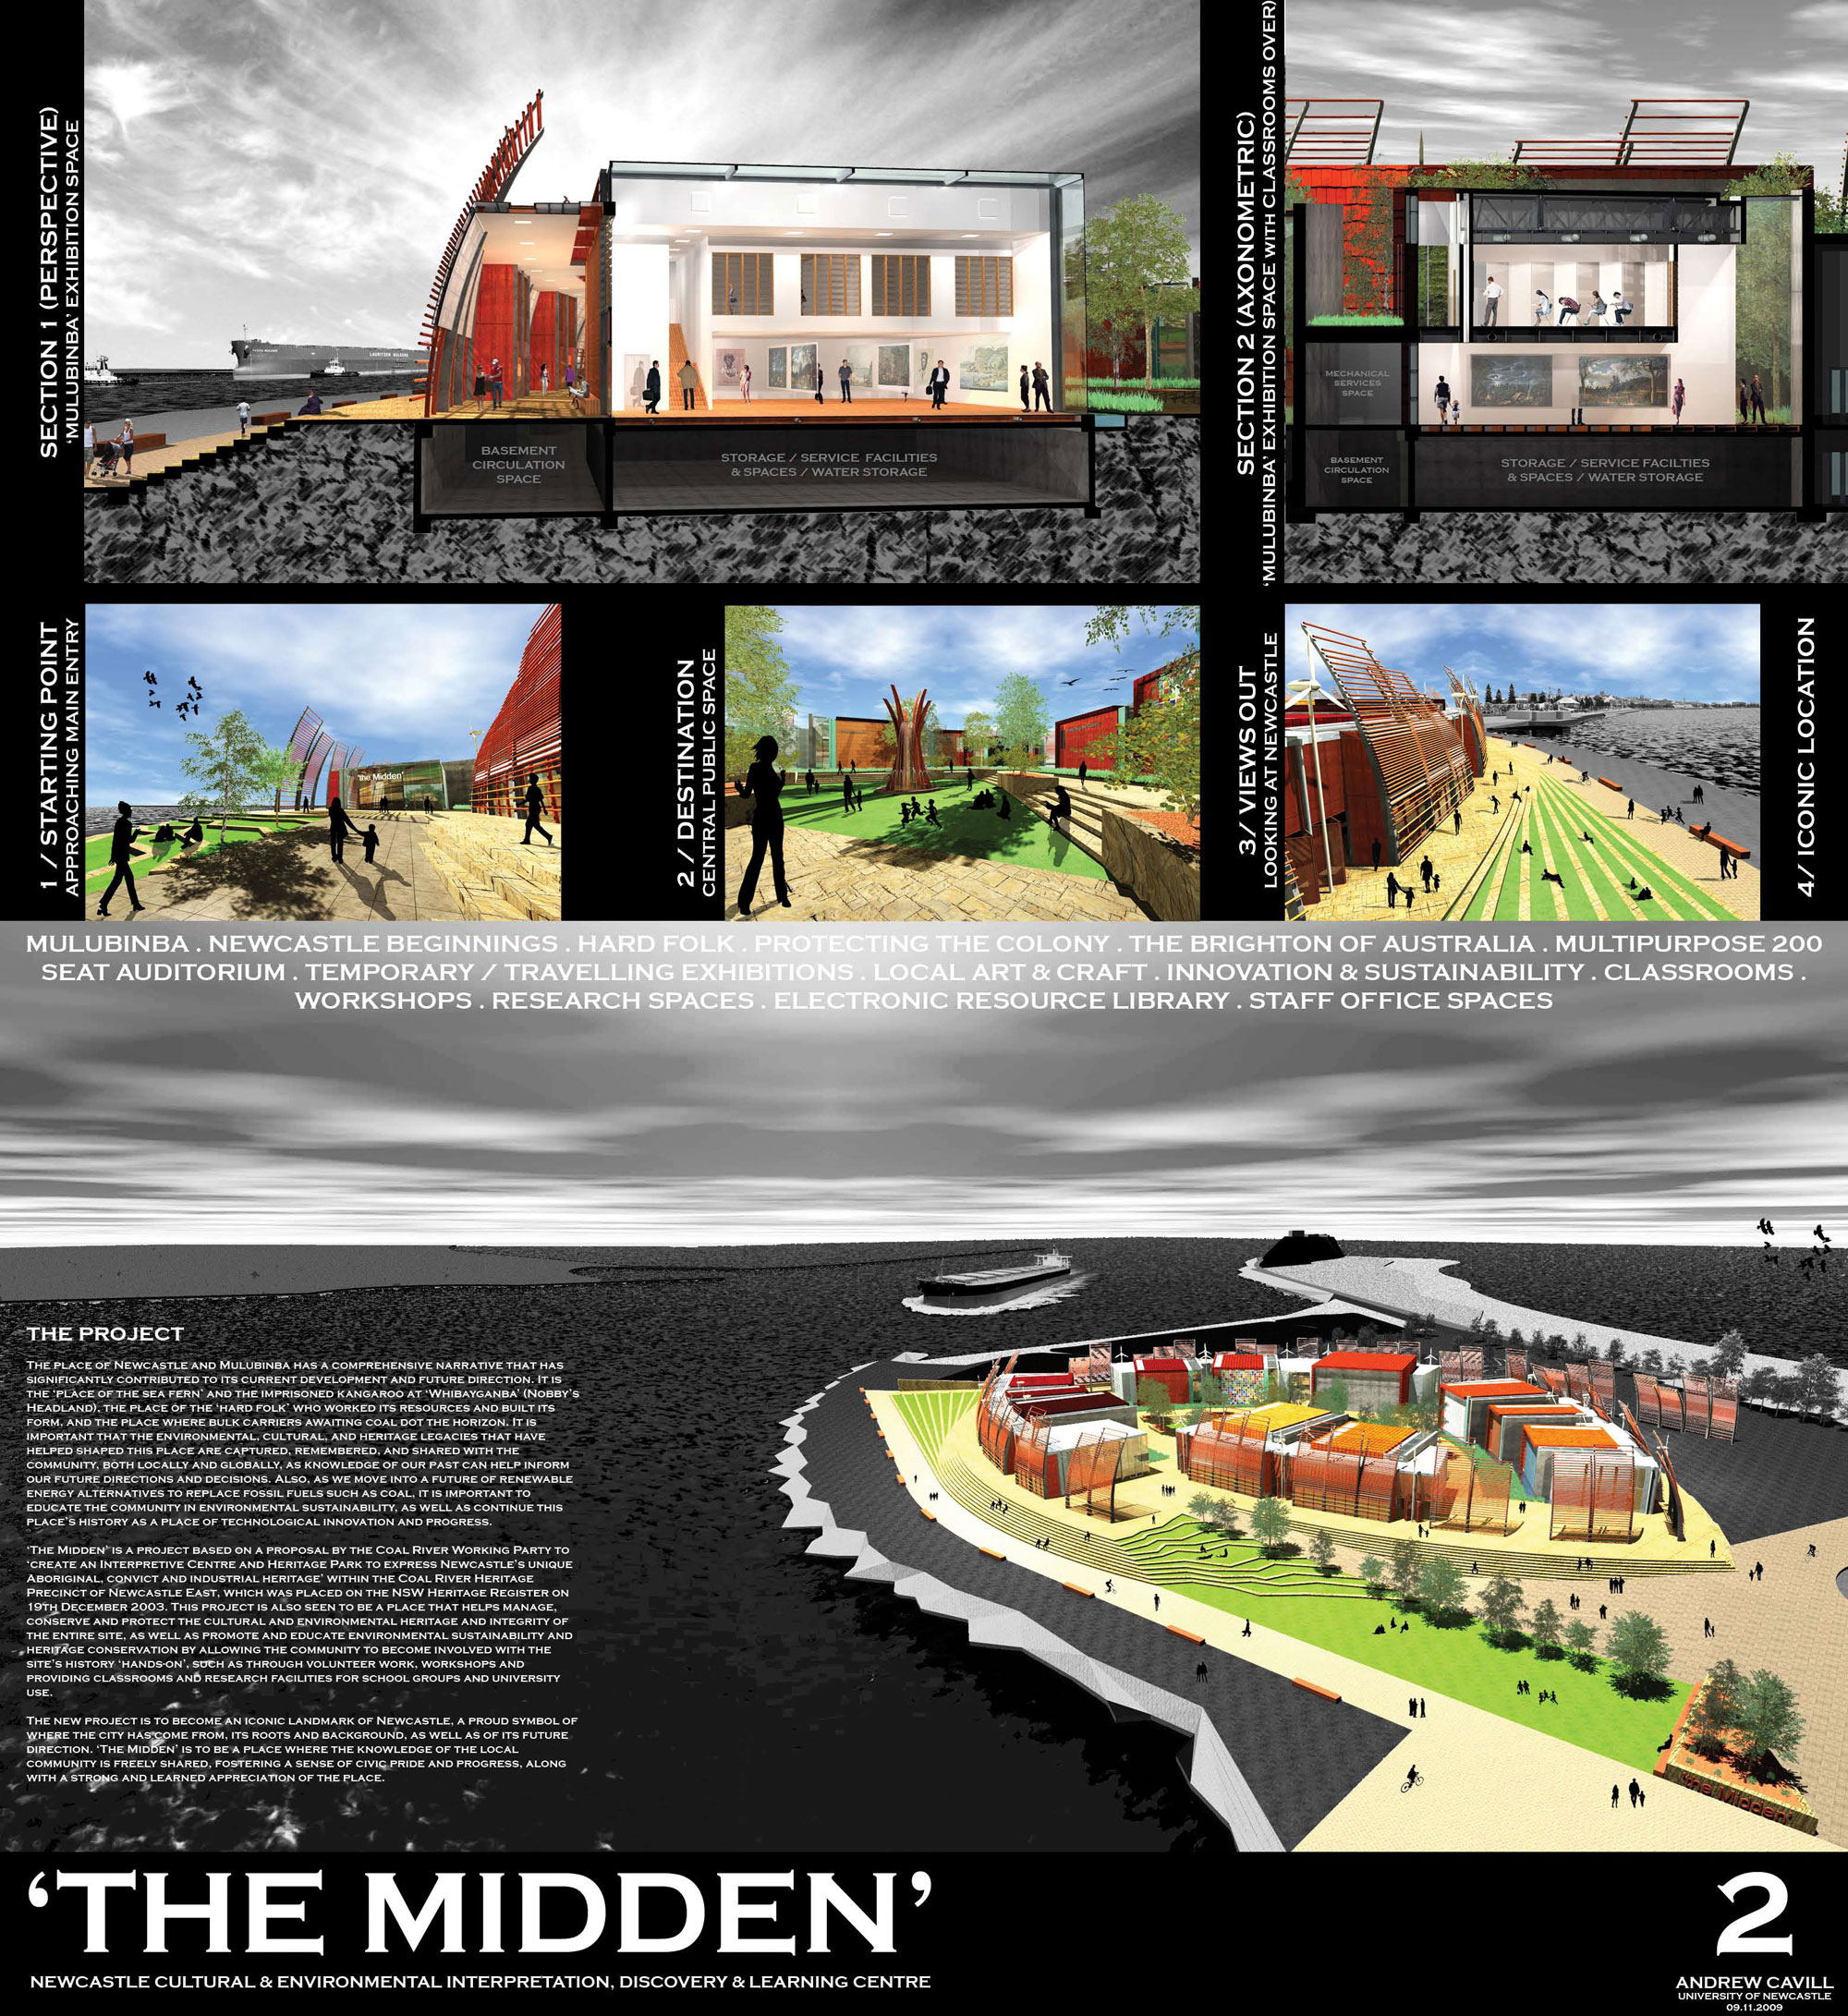 Exhibition Panel No. 2 for 'The Midden' by Andrew Cavill